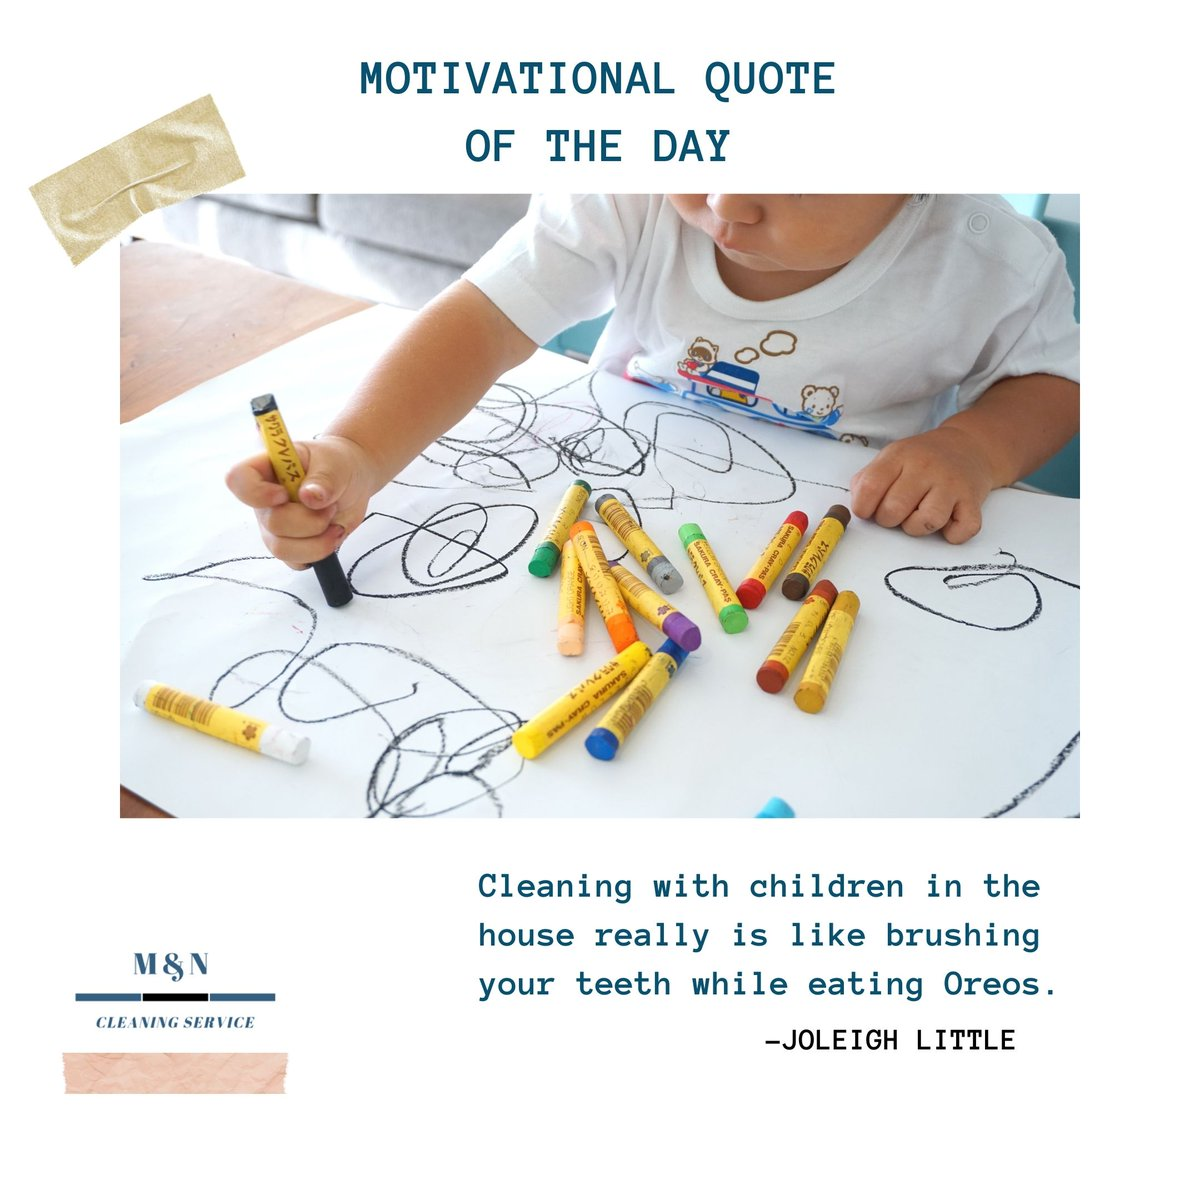 """""""Cleaning with children in the house really is like brushing your teeth while eating Oreos."""" --- Joleigh Little  #QuoteOfTheDay"""